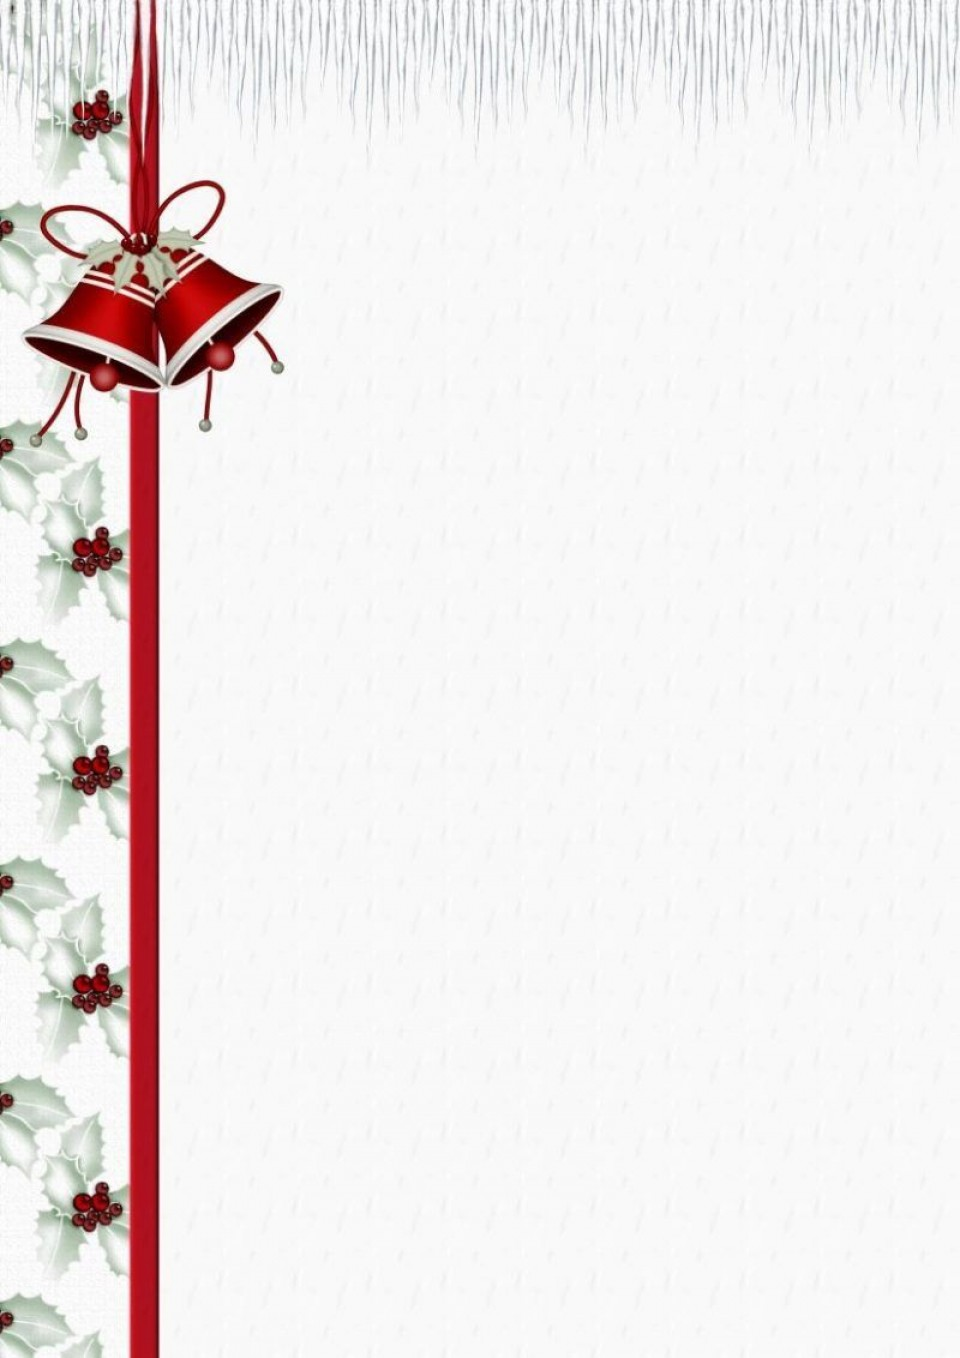 009 Formidable Christma Stationery Template Word Free Concept  Religiou For Downloadable960